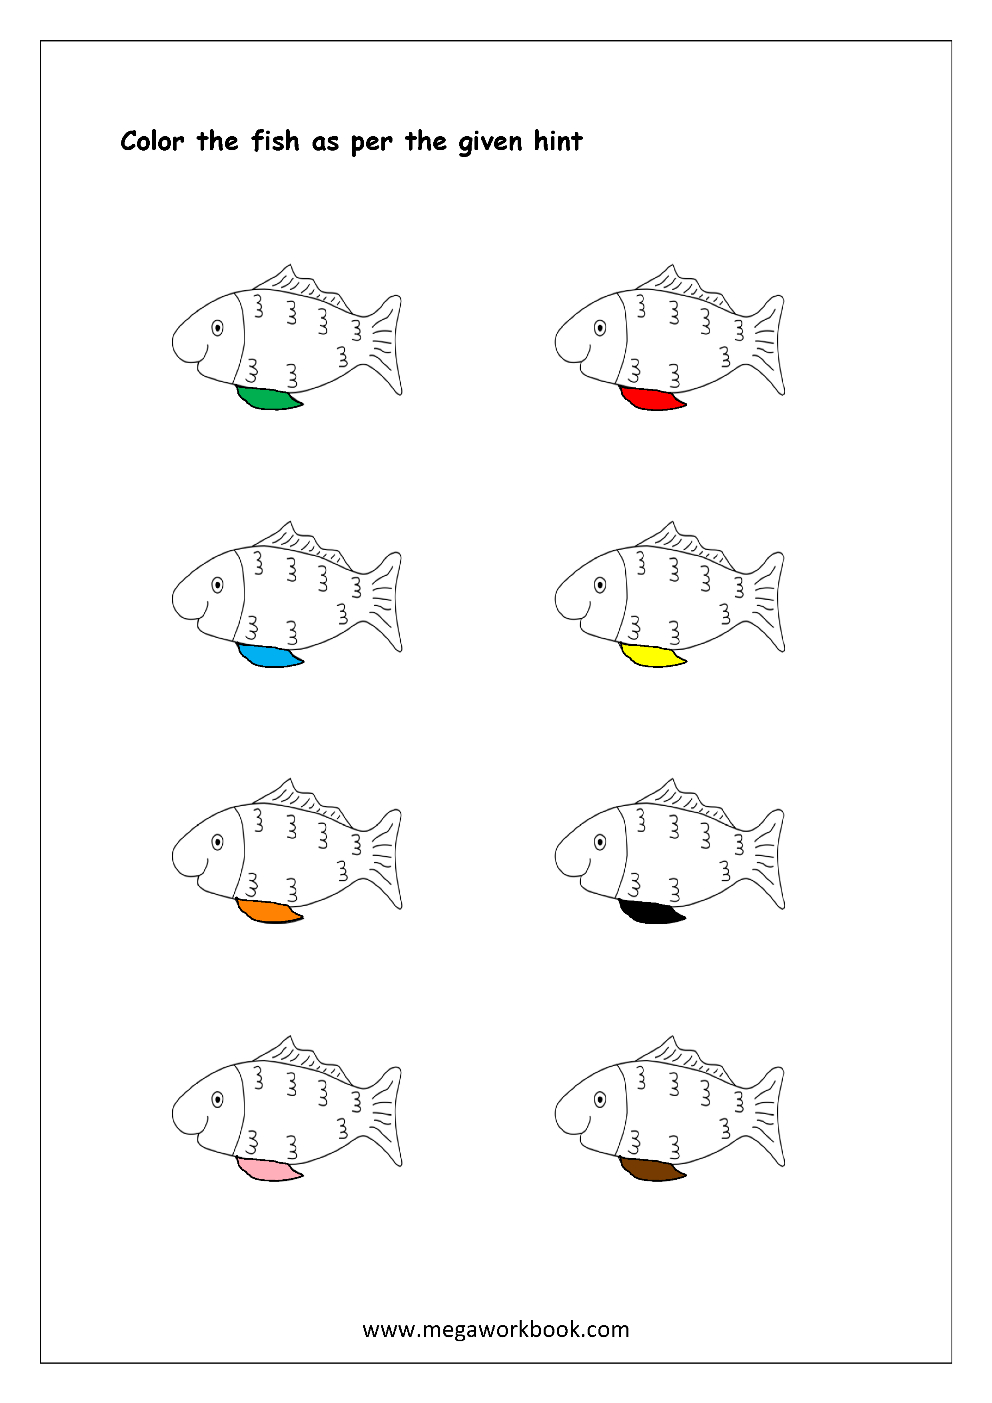 Free Printable Color Recognition Worksheets - Colormatching Hint - Color Recognition Worksheets Free Printable